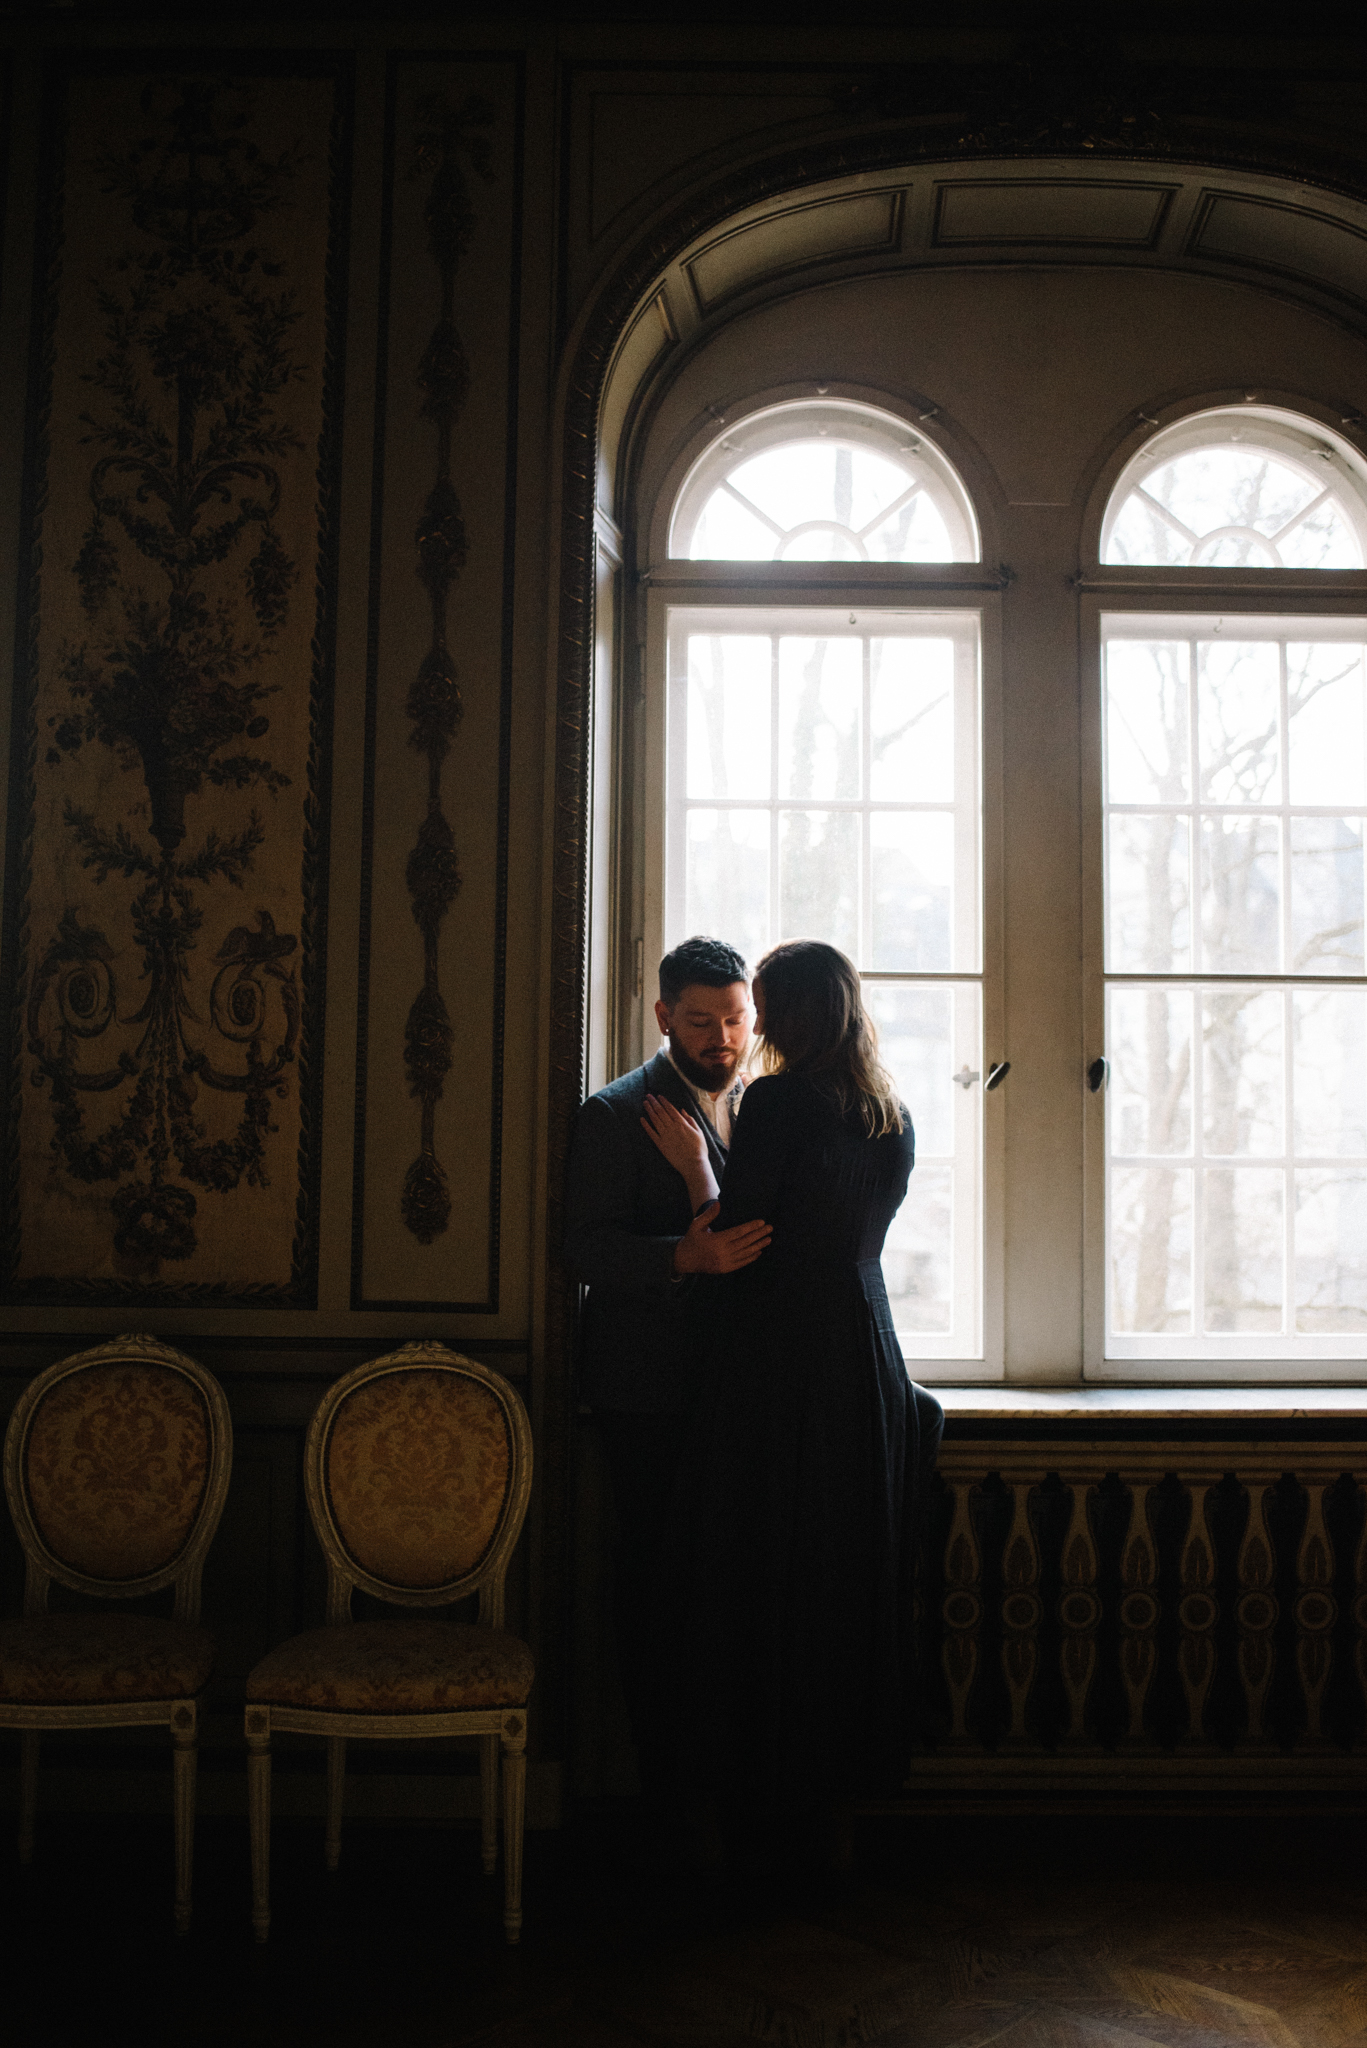 Ronja and Victor Intimate Castle Couple Portrait Session Germany Muse and Mirror_4.JPG